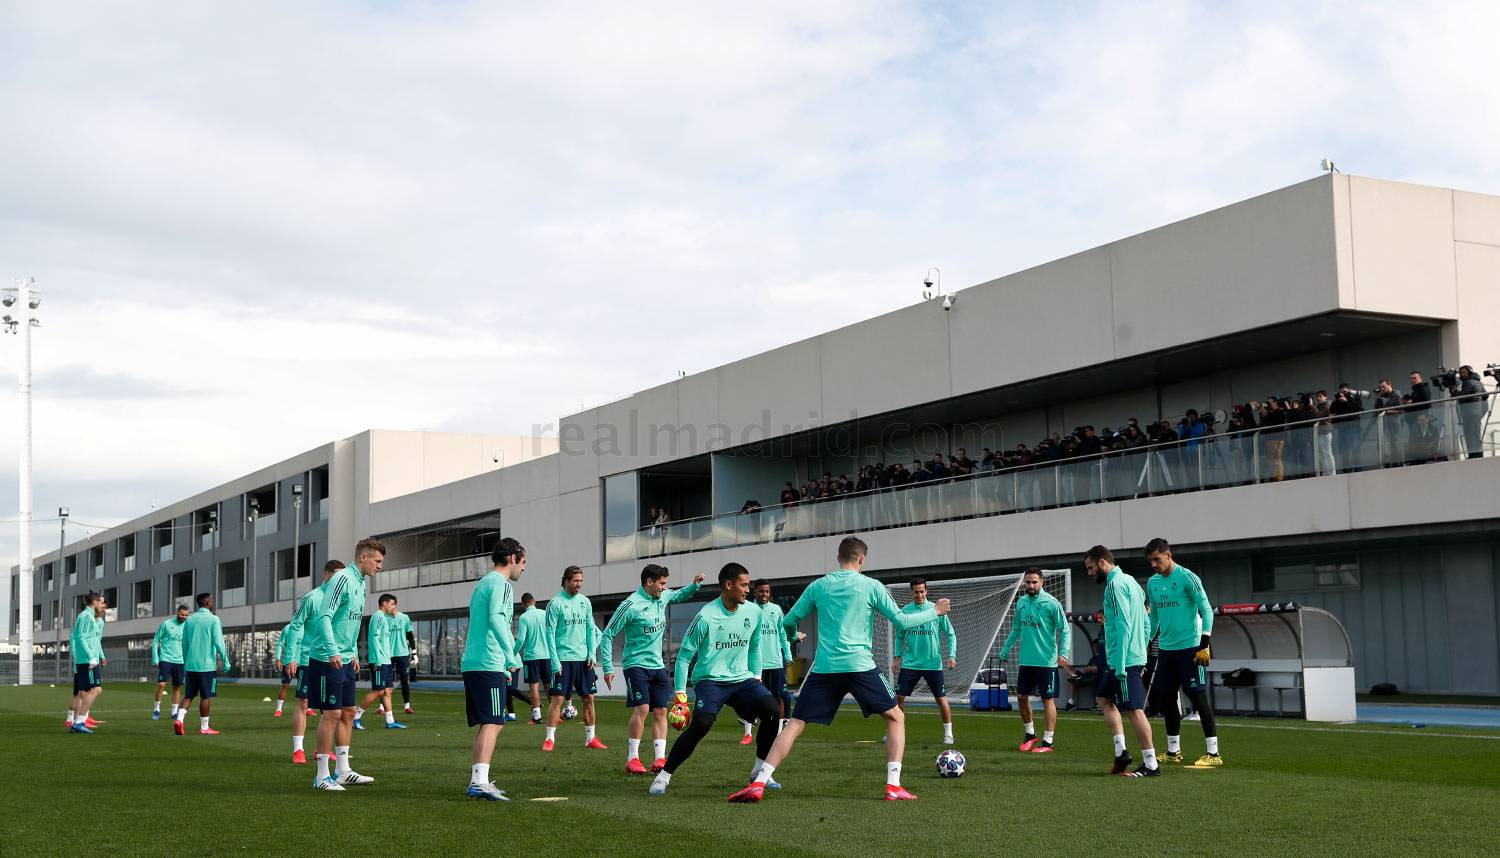 Real Madrid - Entrenamiento del Real Madrid  - 25-02-2020